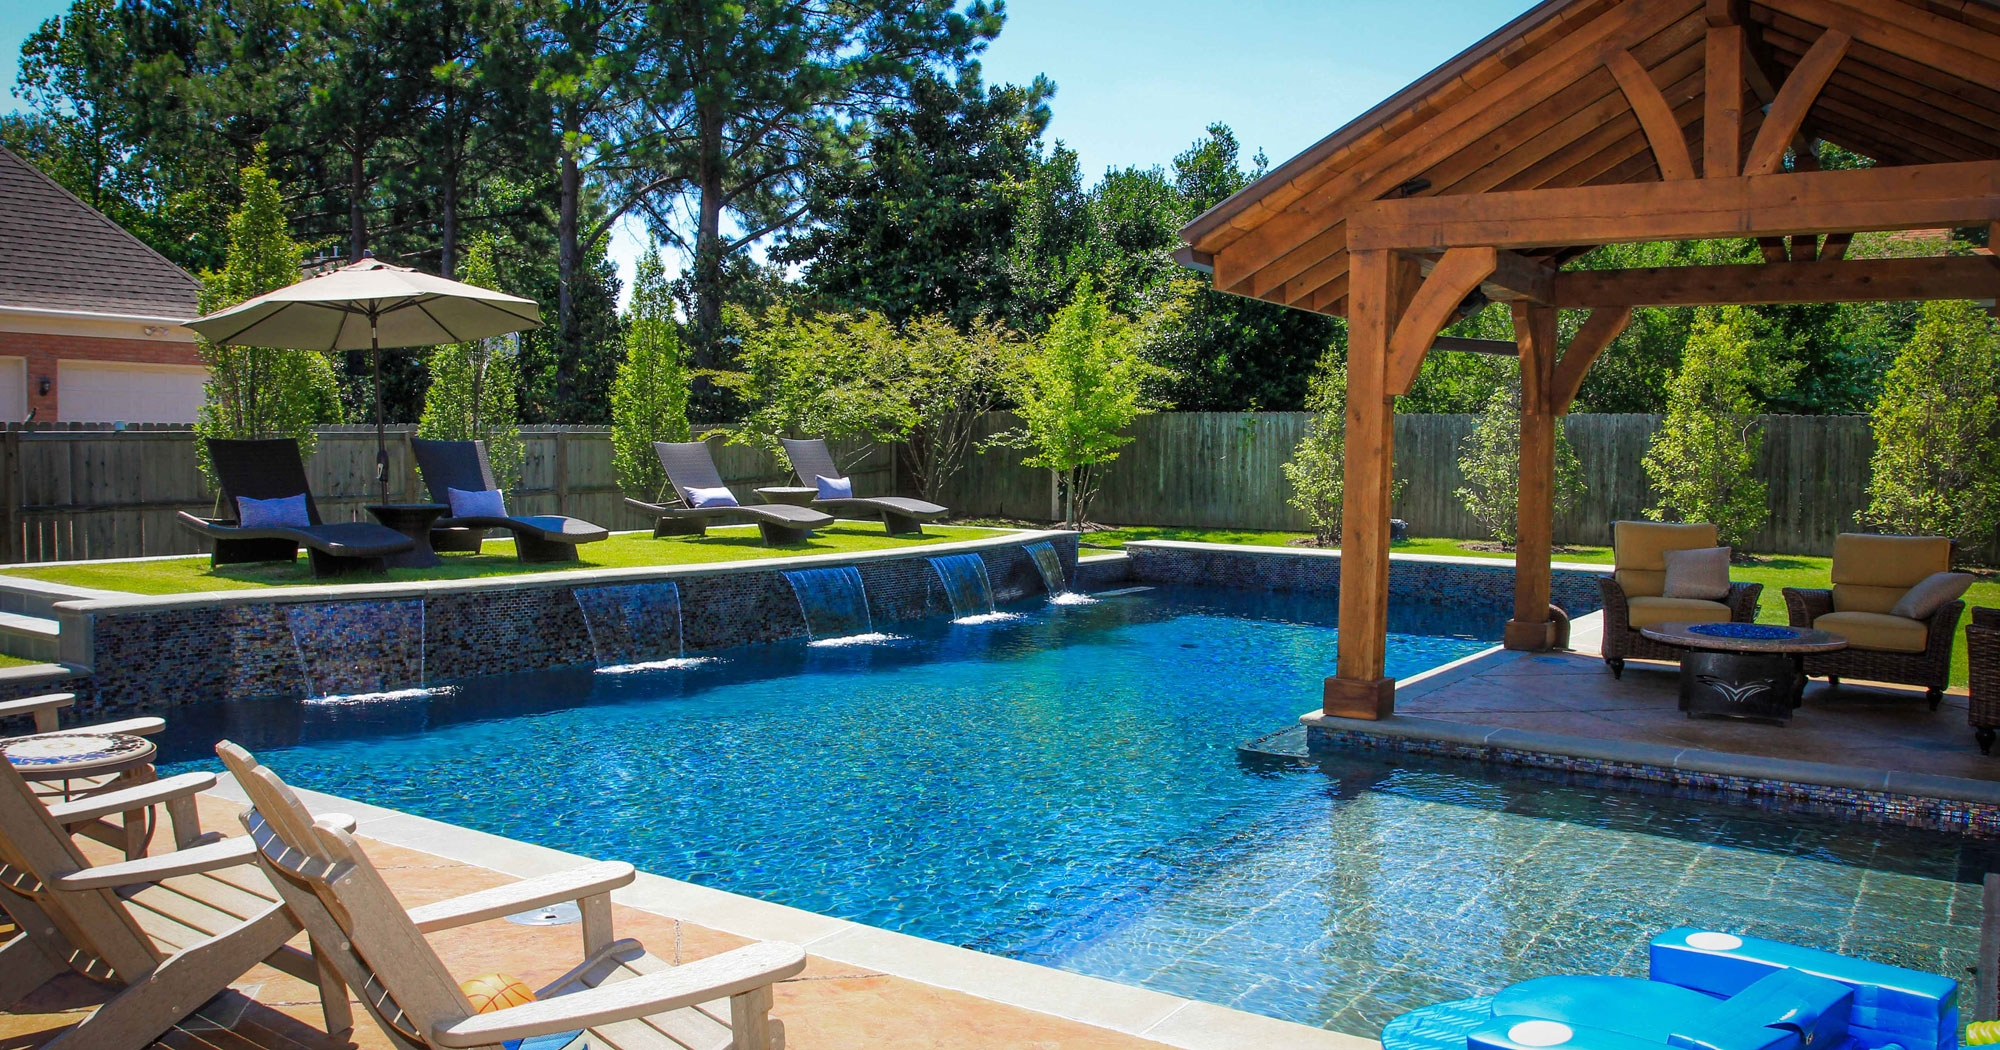 Small-Backyard-Pool-Dimensions-Small-Backyard-Pool-Design